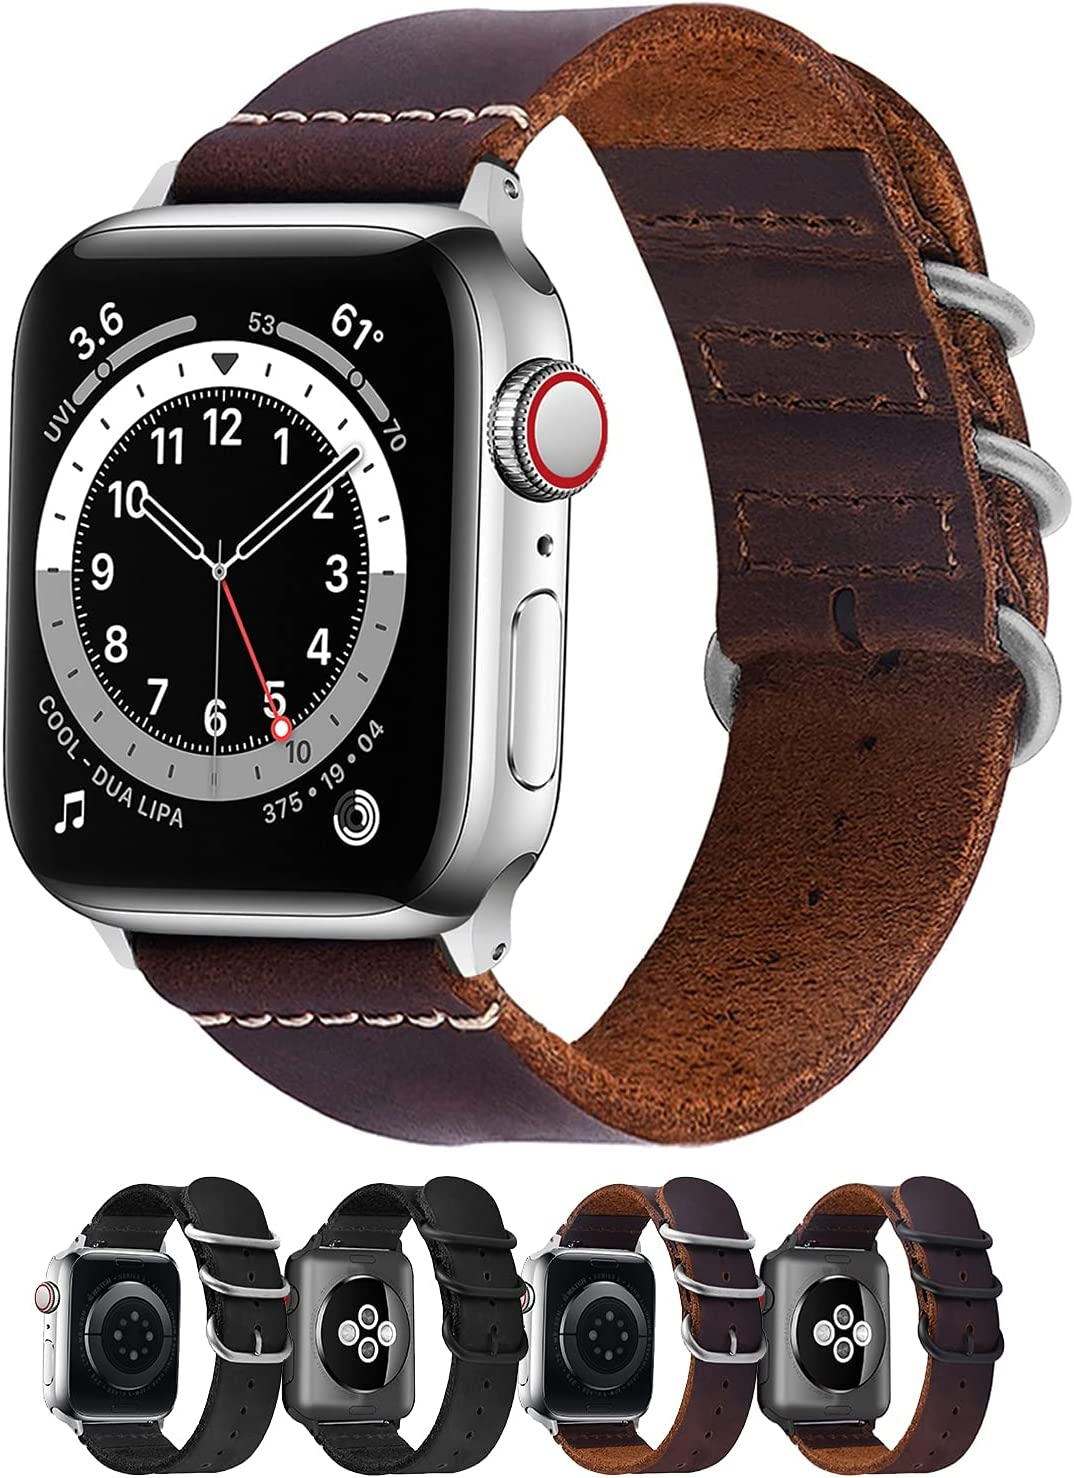 Fullmosa Compatible Apple Watch Band 44mm 42mm 38mm 40mm, Leather Strap for iWatch SE & Series 6/5/4/3/2/1, Black + Silver Buckle, 44mm 42mm